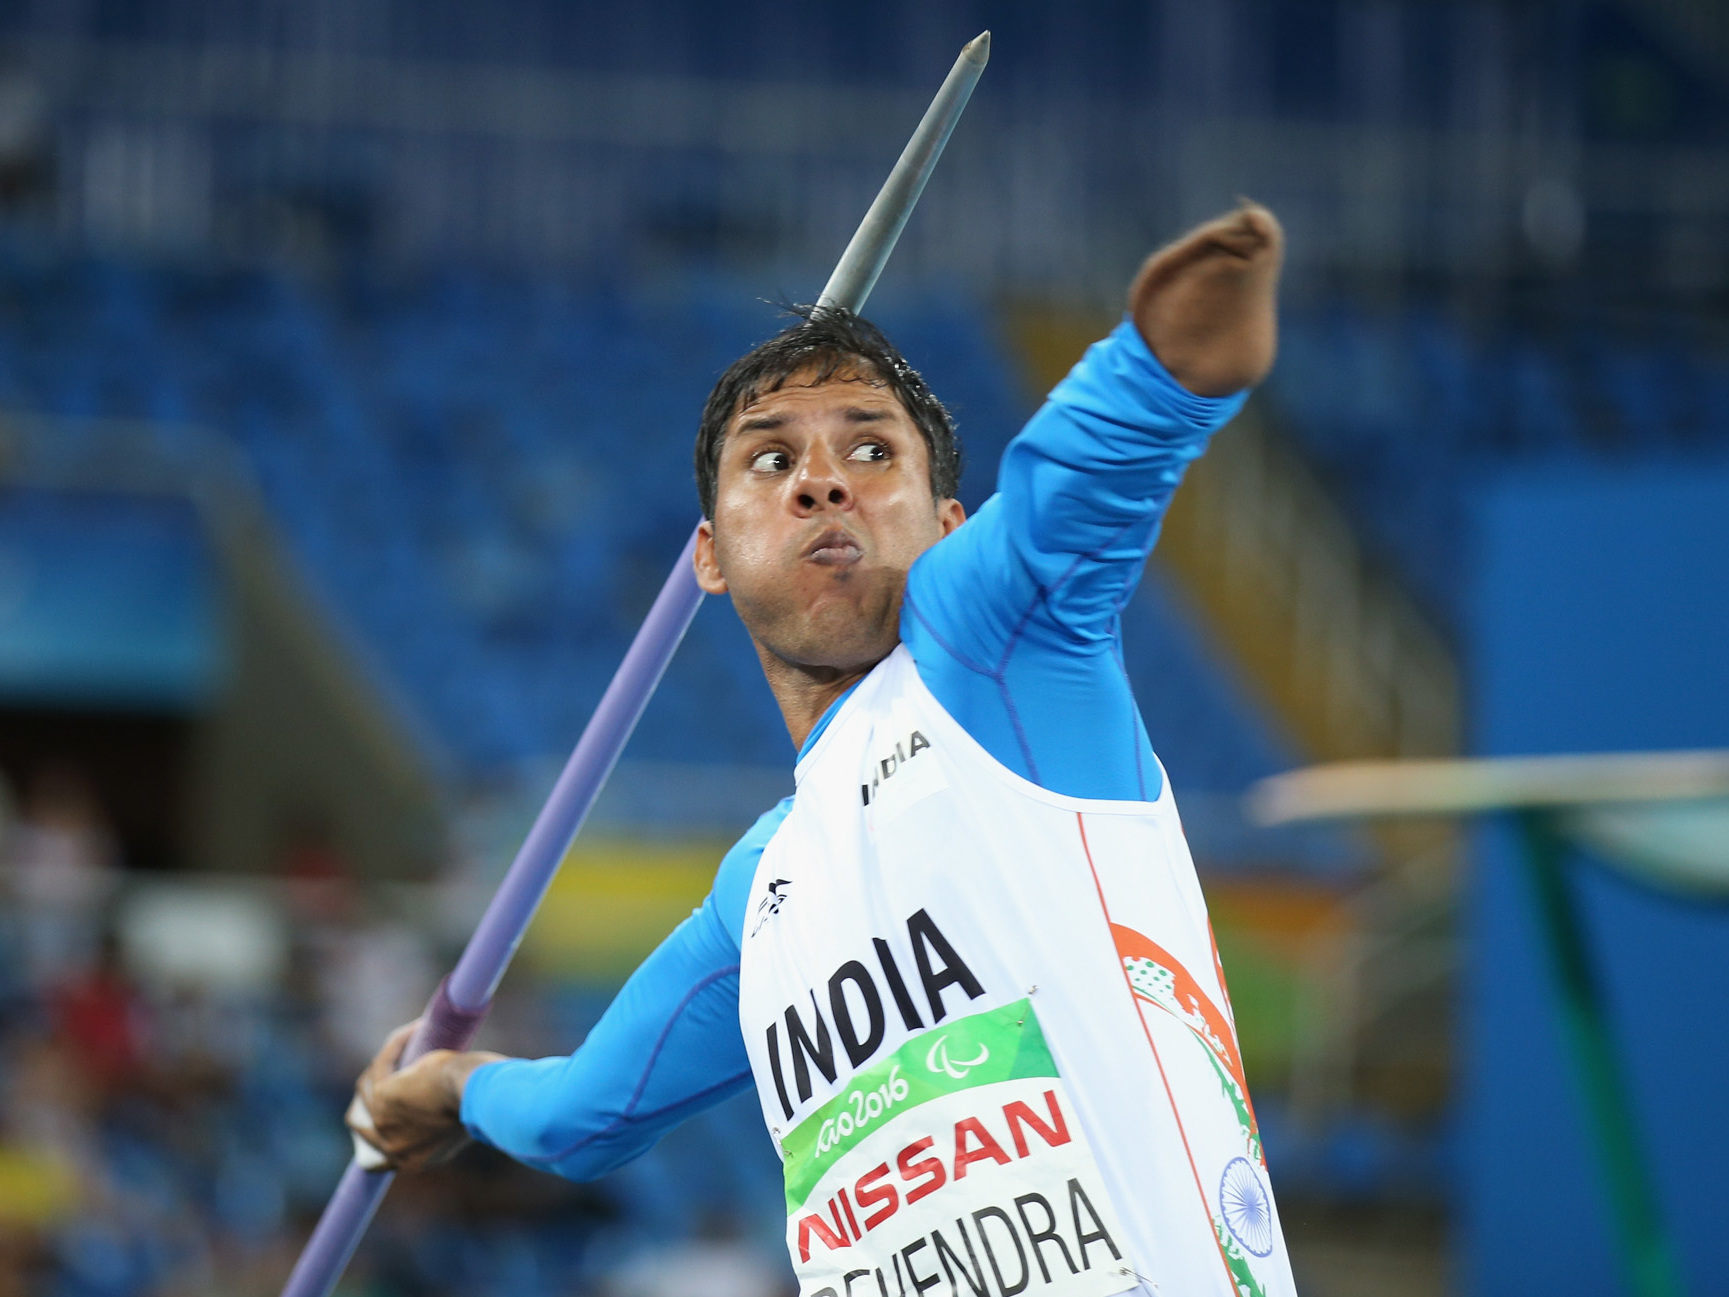 What's The Secret To India's Paralympics Success?